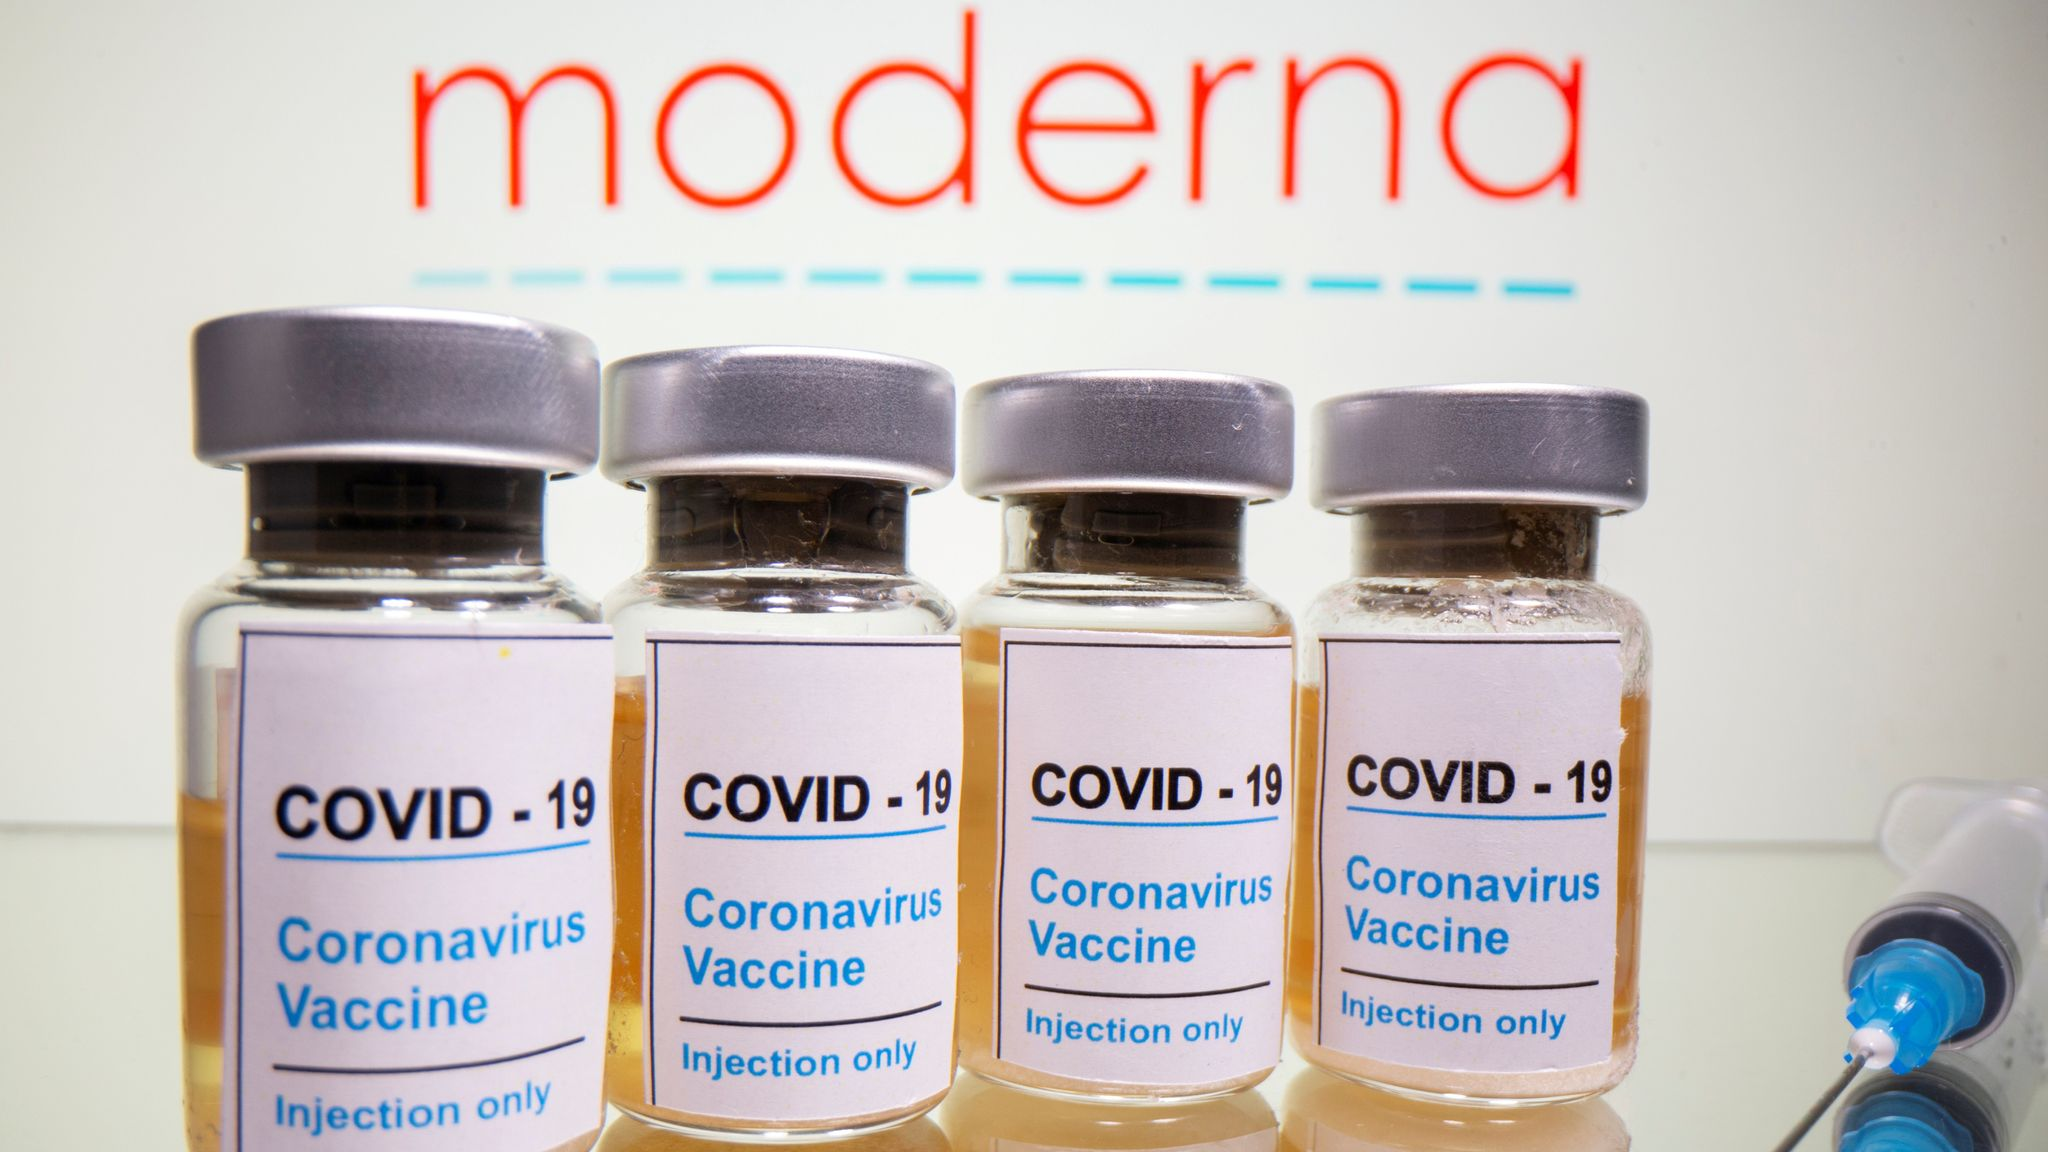 COVID-19: Moderna jab approval is a big boost - but it will not have an  immediate impact | UK News | Sky News